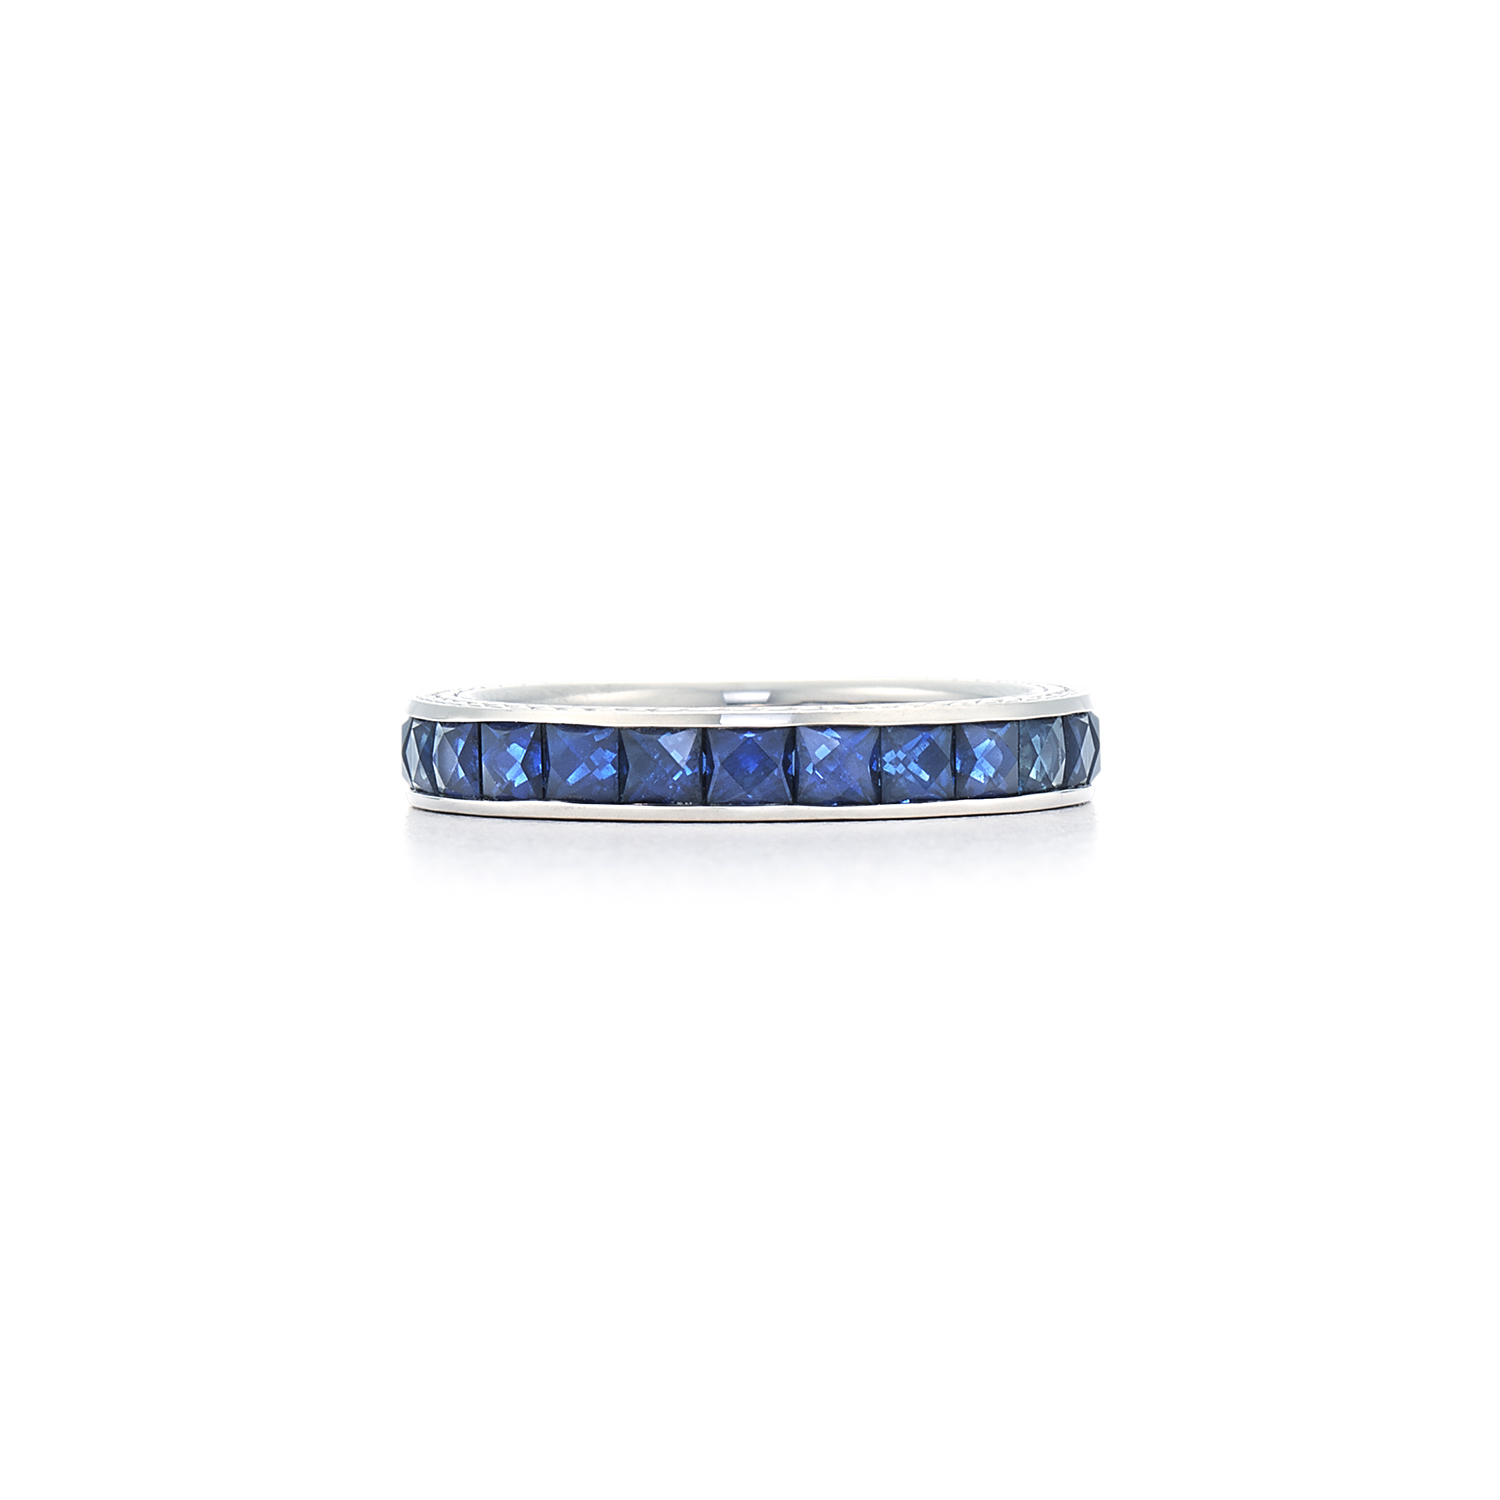 Signed Fred Leighton French Cut Sapphire Eternity Band Ring R-1011FL-0-SAP-18KW